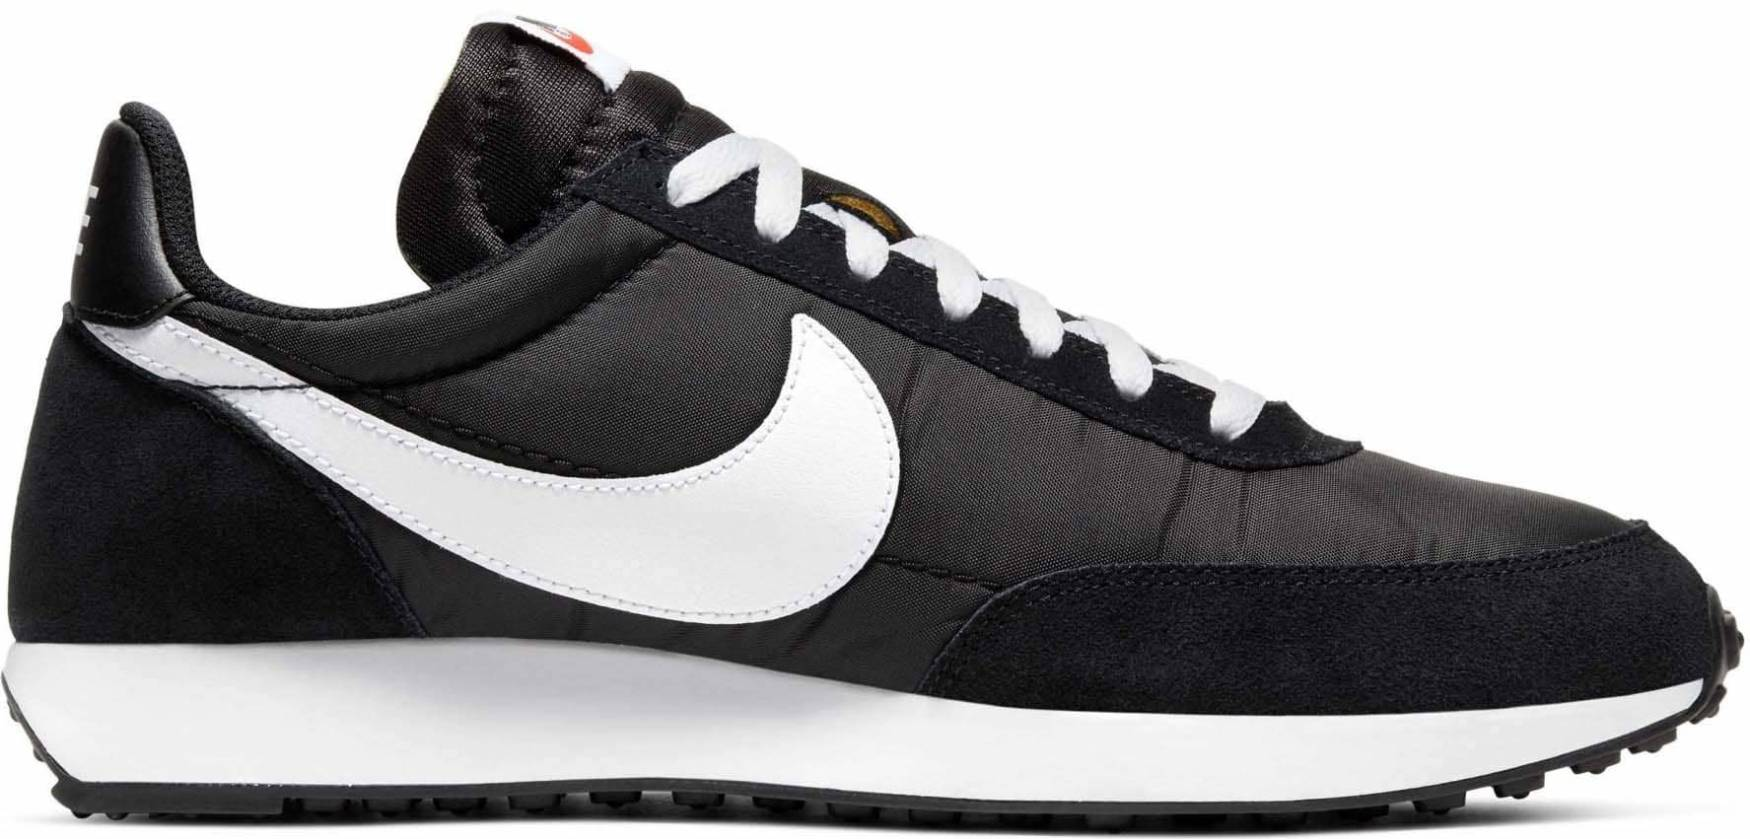 The history of Nike Air Tailwind 79